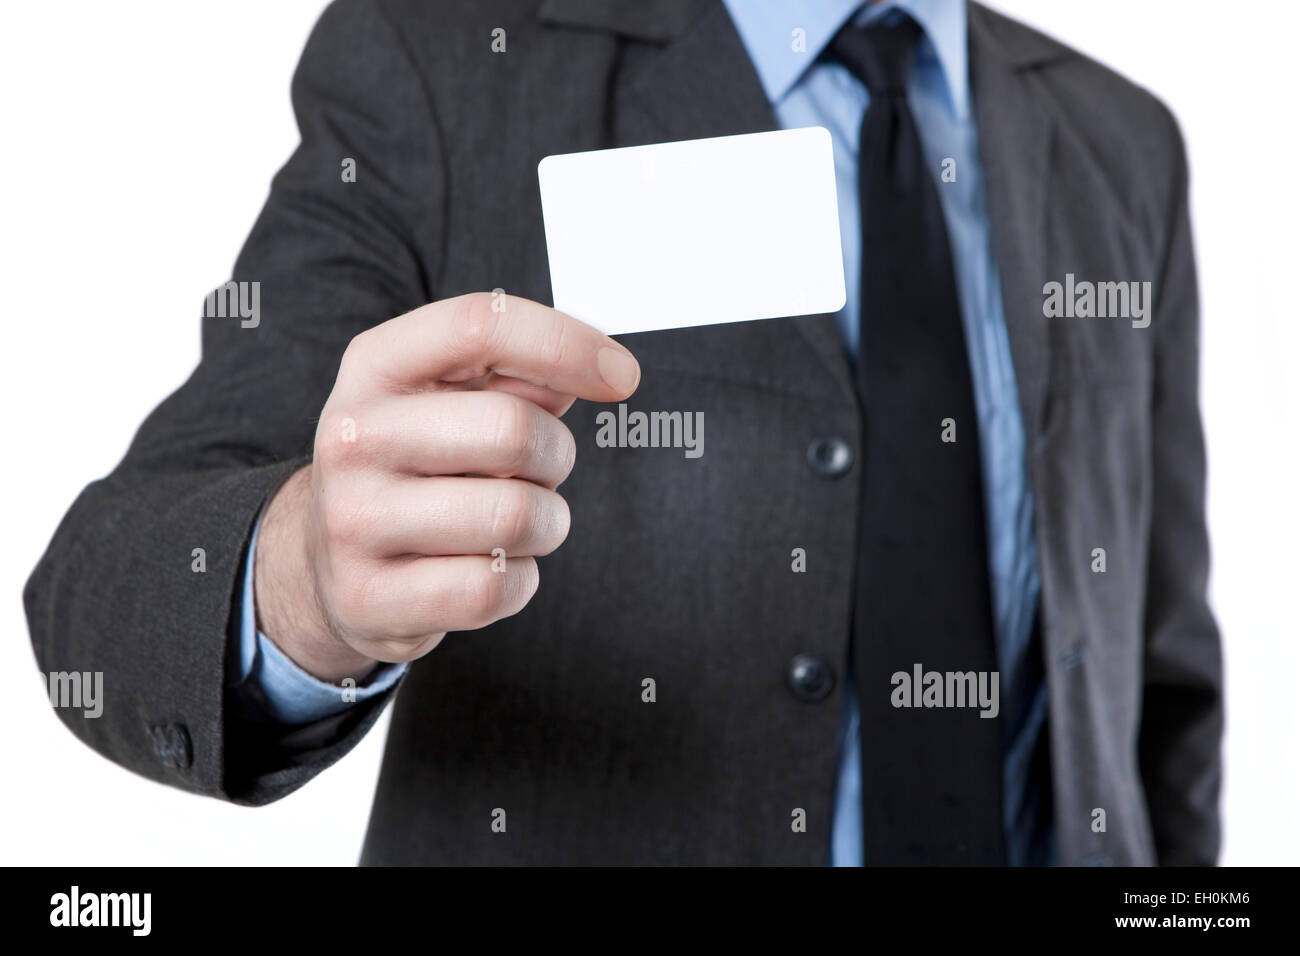 Man in suit with tie holds a white business card in hand, no face ...